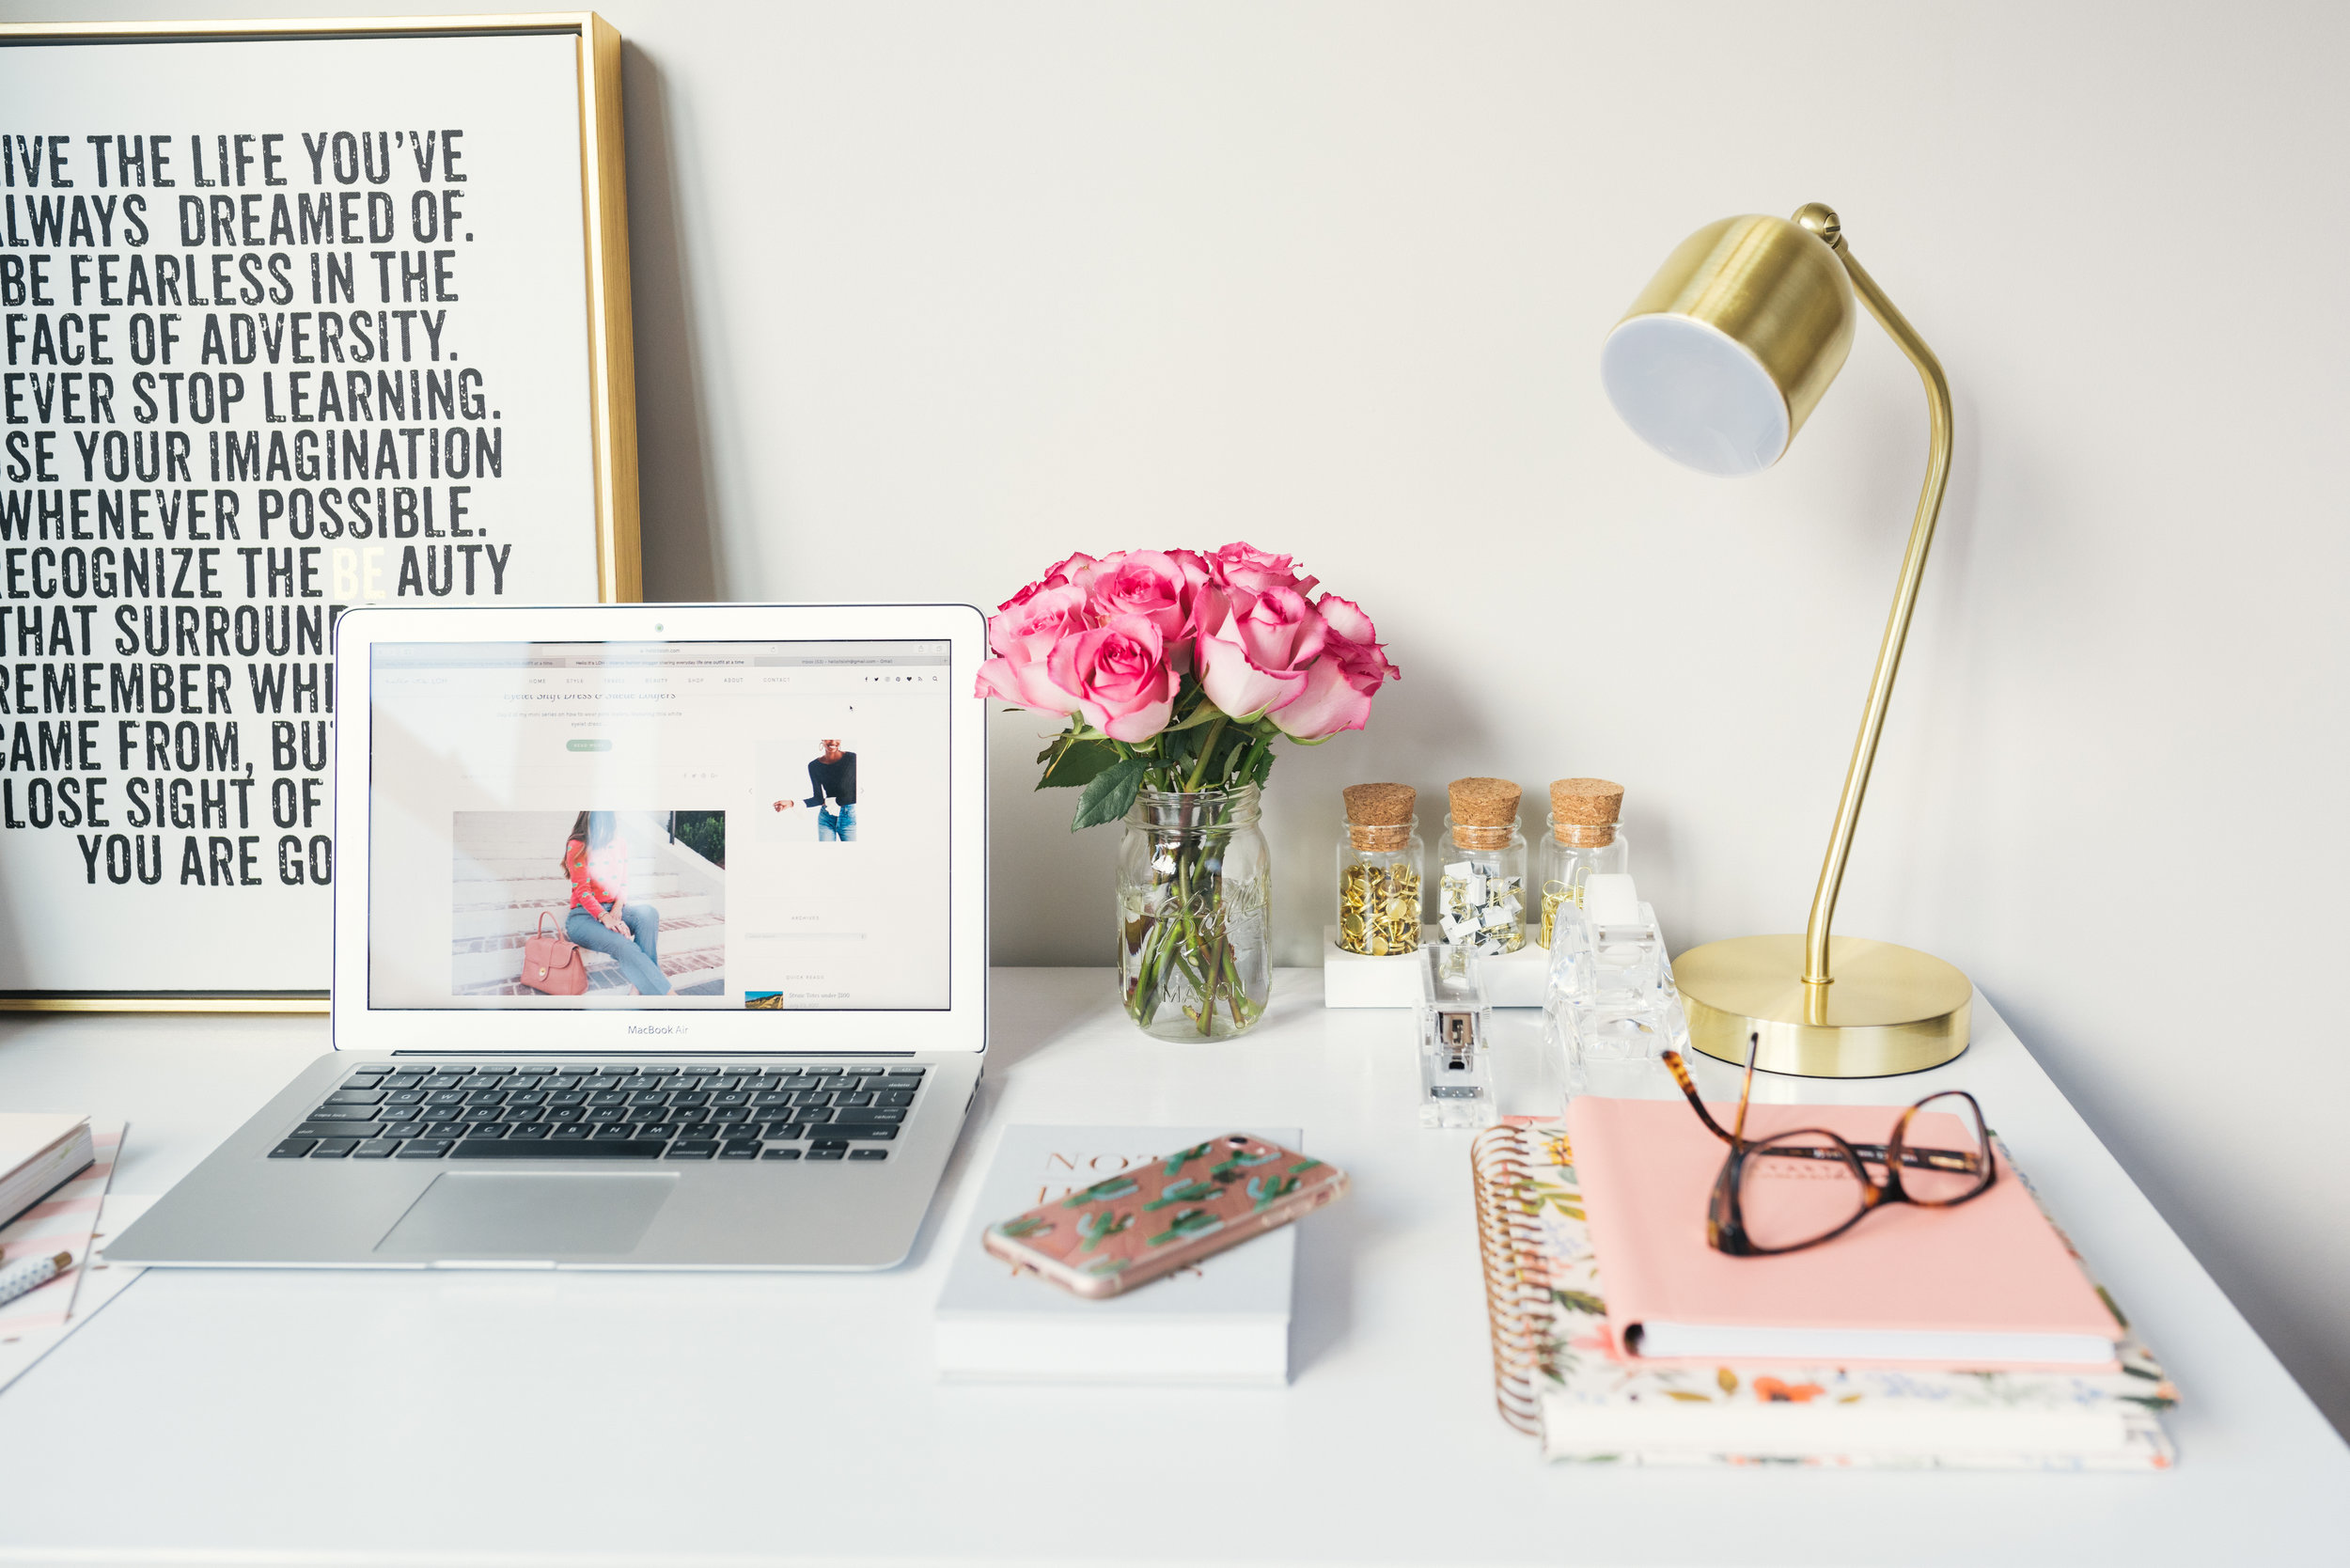 Are You A Muslima Who Wants To Start A Blog, Website, Or Online Store? - I'm sure you're overwhelmed by the thought of all the things you need to do to start a website.